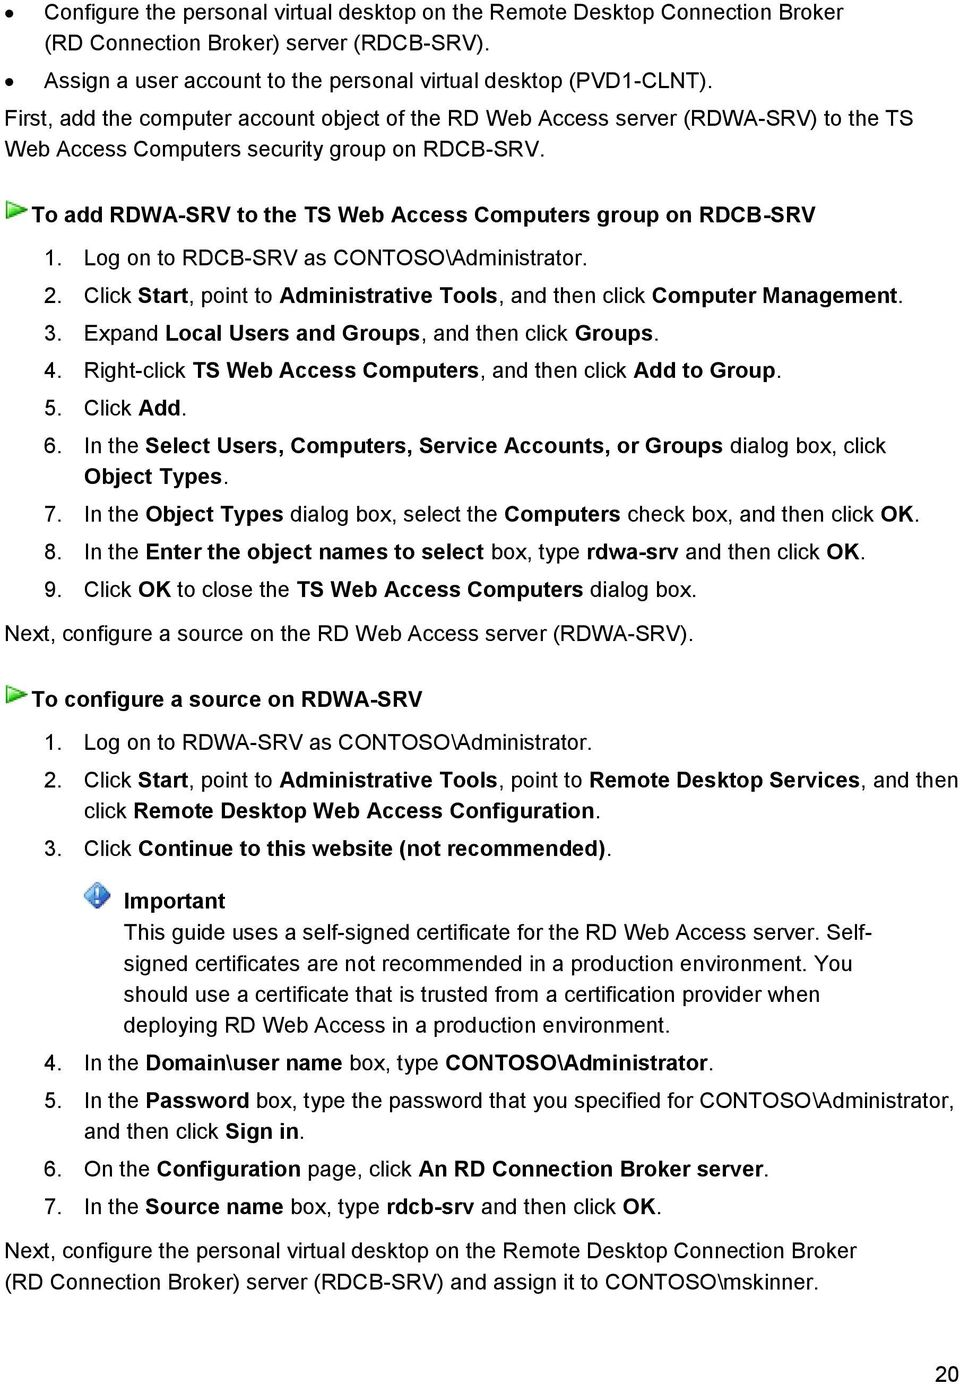 To add RDWA-SRV to the TS Web Access Computers group on RDCB-SRV 1. Log on to RDCB-SRV as CONTOSO\Administrator. 2. Click Start, point to Administrative Tools, and then click Computer Management. 3.